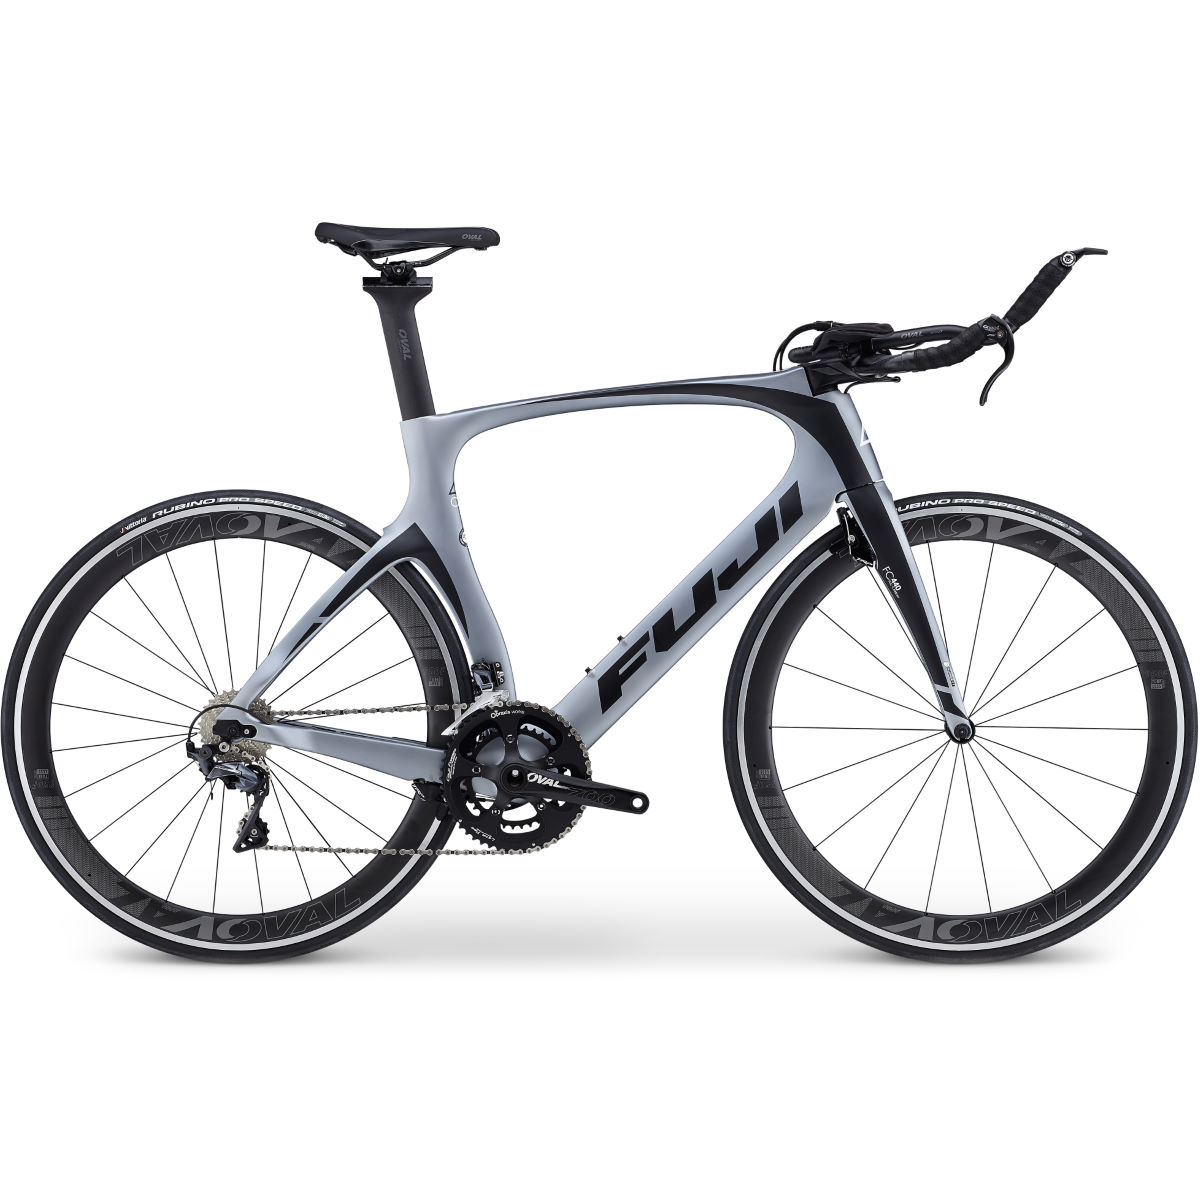 Fuji Norcom Straight 2.1 TT Bike (2018) - Road bikes